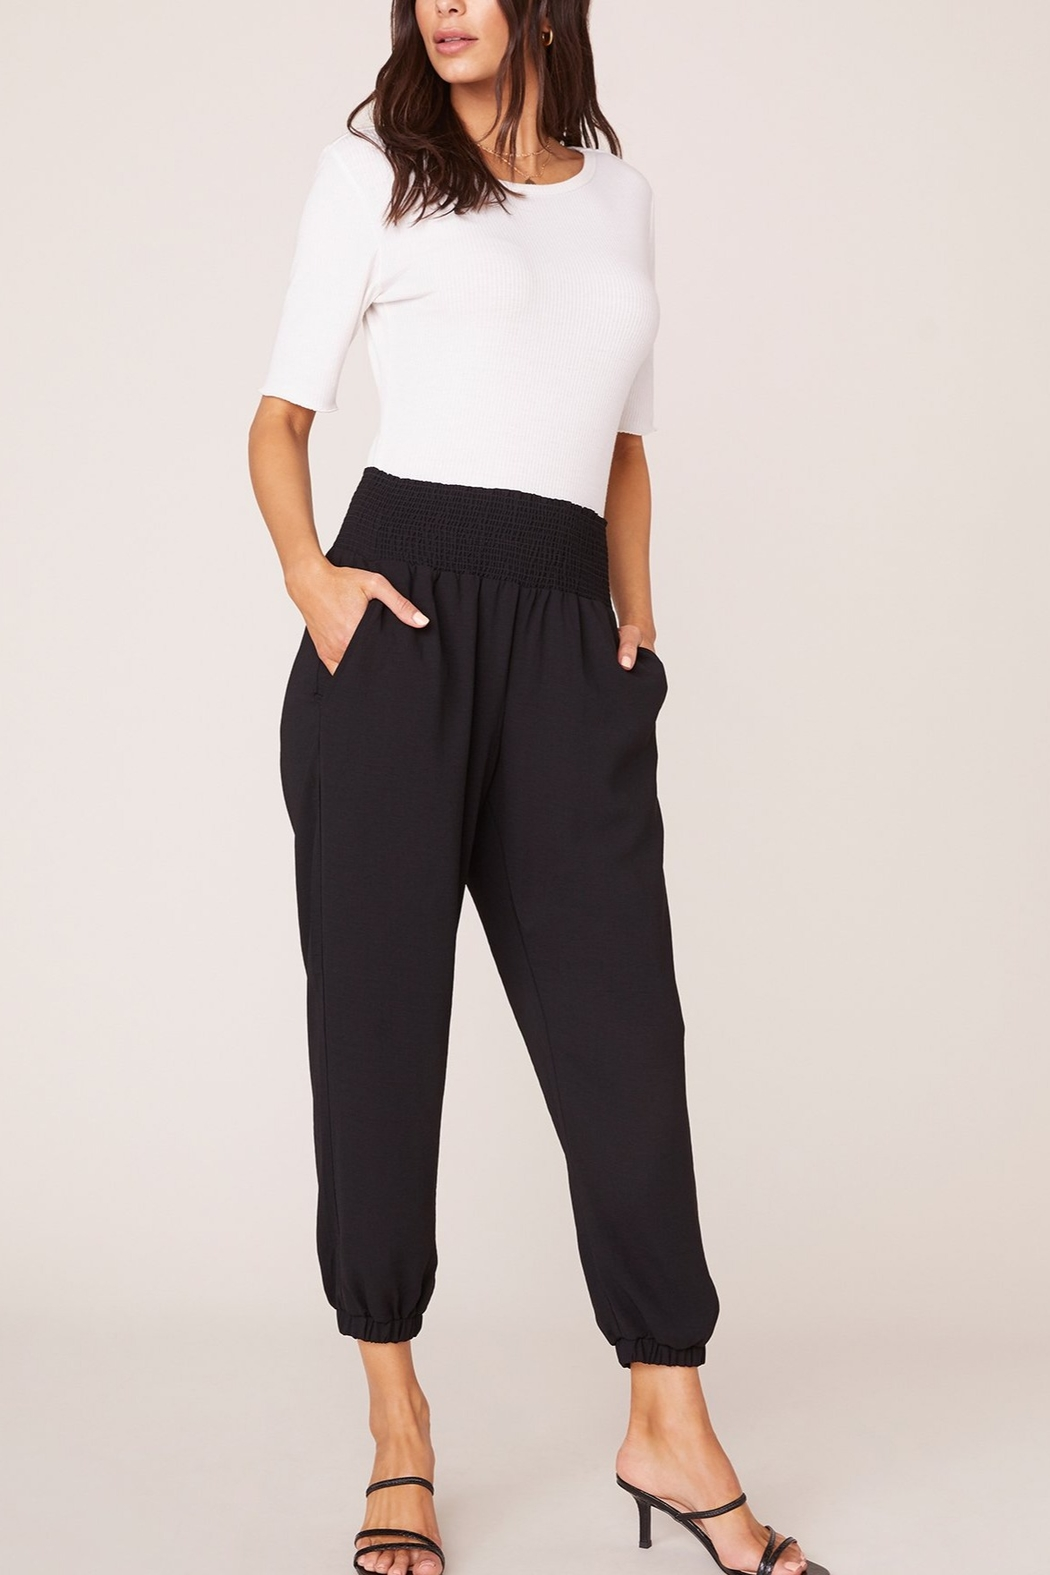 Jack by BB Dakota Black Jogger Pant - Back Cropped Image